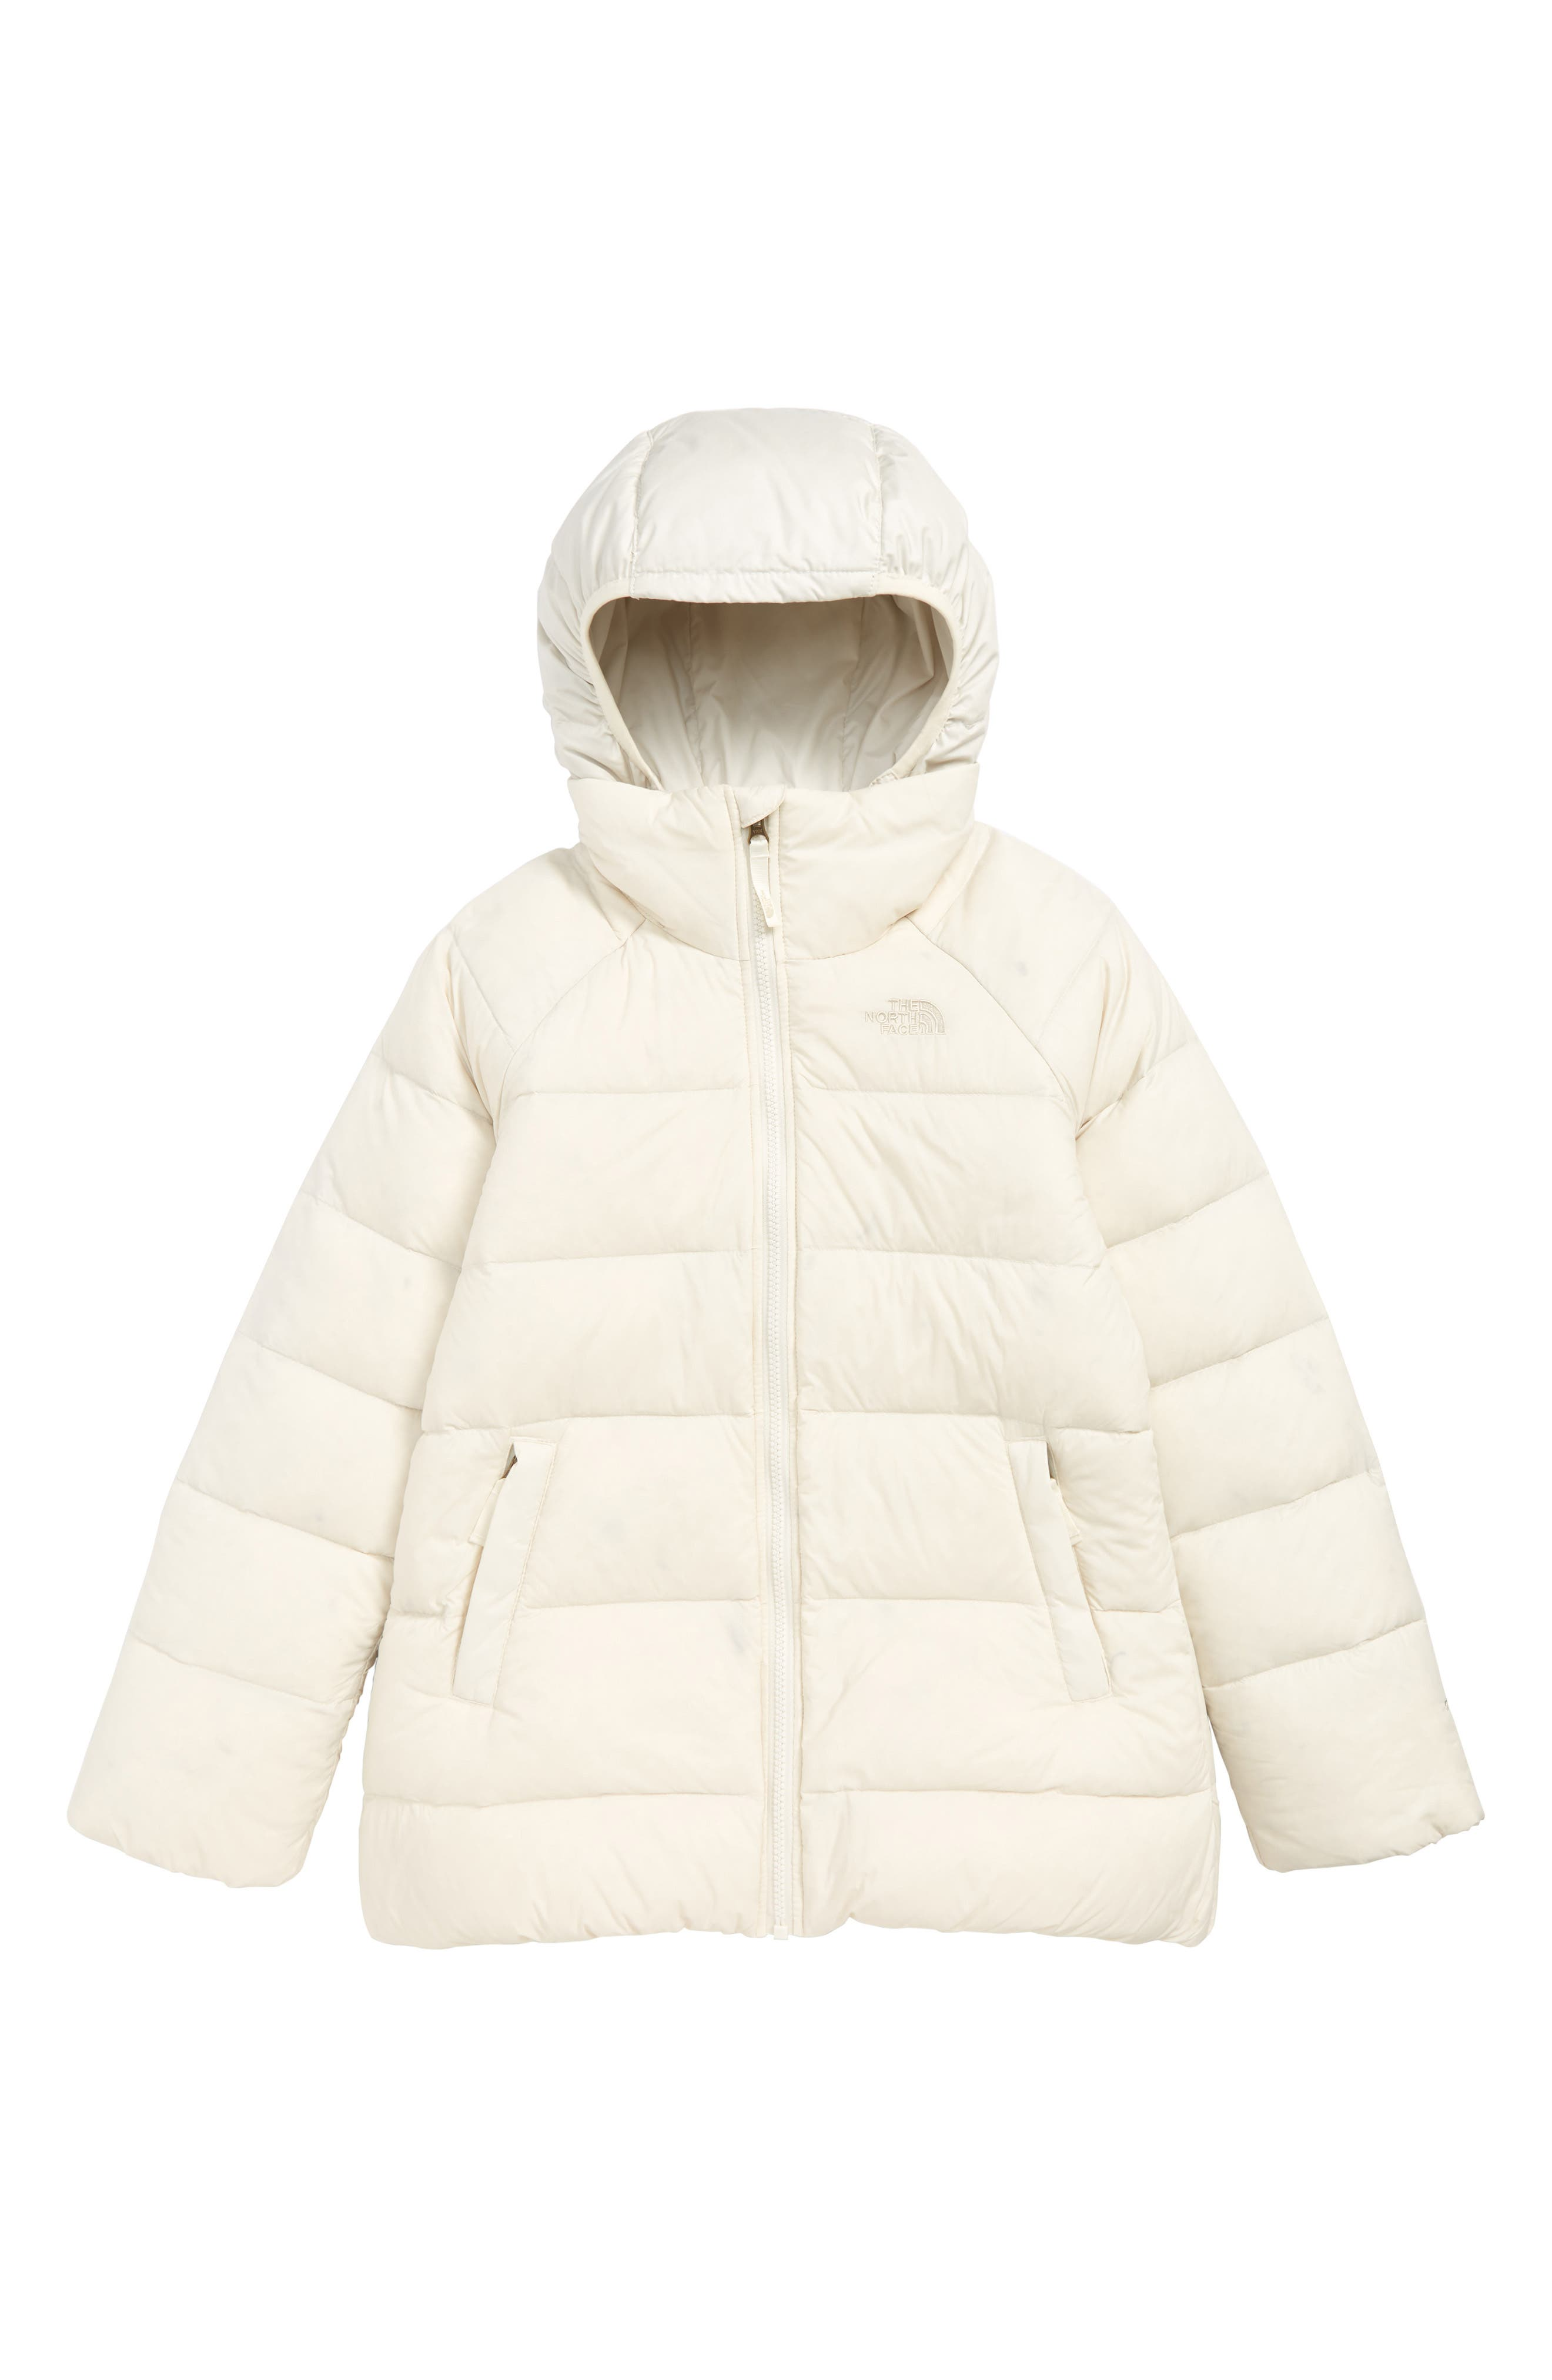 THE NORTH FACE Double Down TriClimate<sup>®</sup> 3-in-1 Jacket, Main, color, VINTAGE WHITE